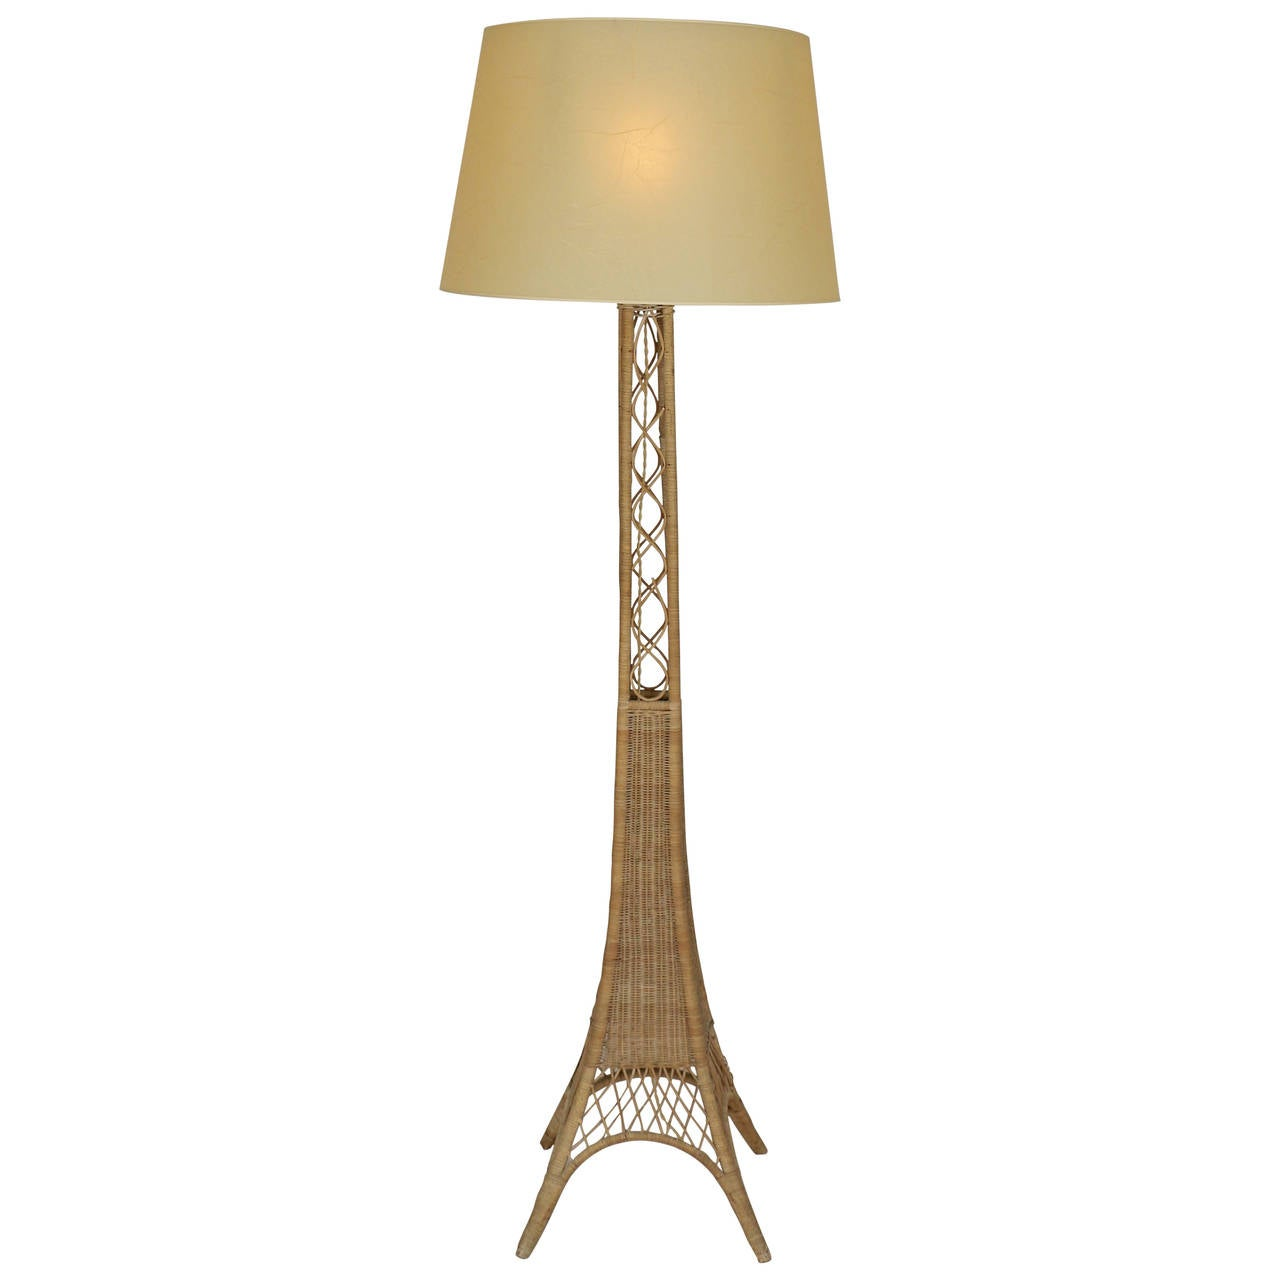 Rattan floor lamp in the style of jean roy re 1970s at 1stdibs for 1970s floor lamps